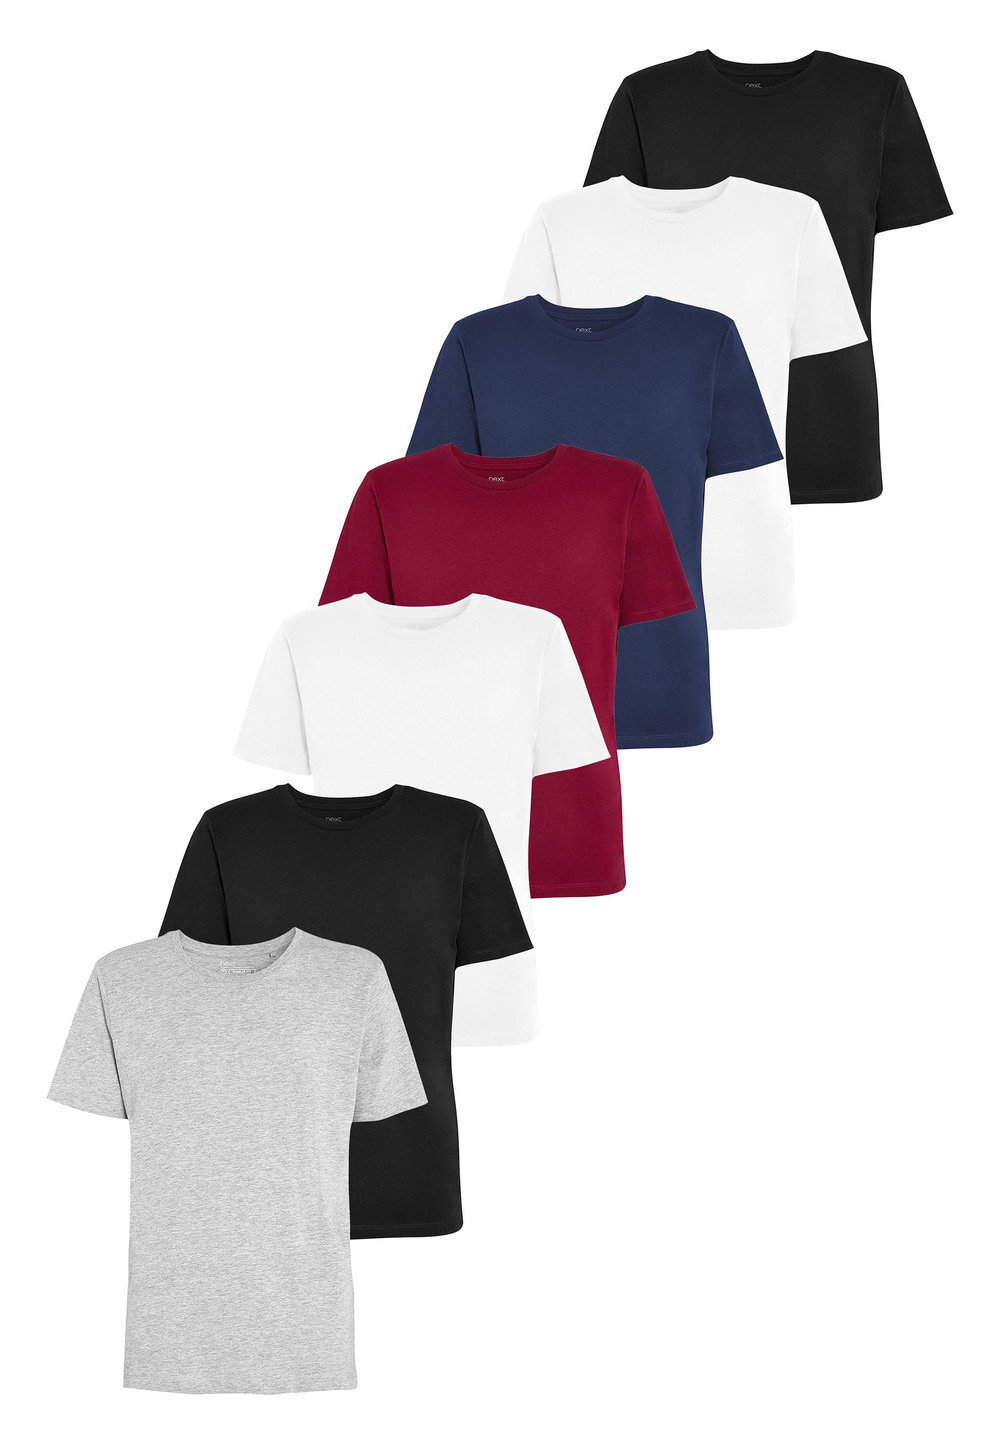 3b52cf270 Next Colour T-Shirts Seven Pack Online | Shop EziBuy